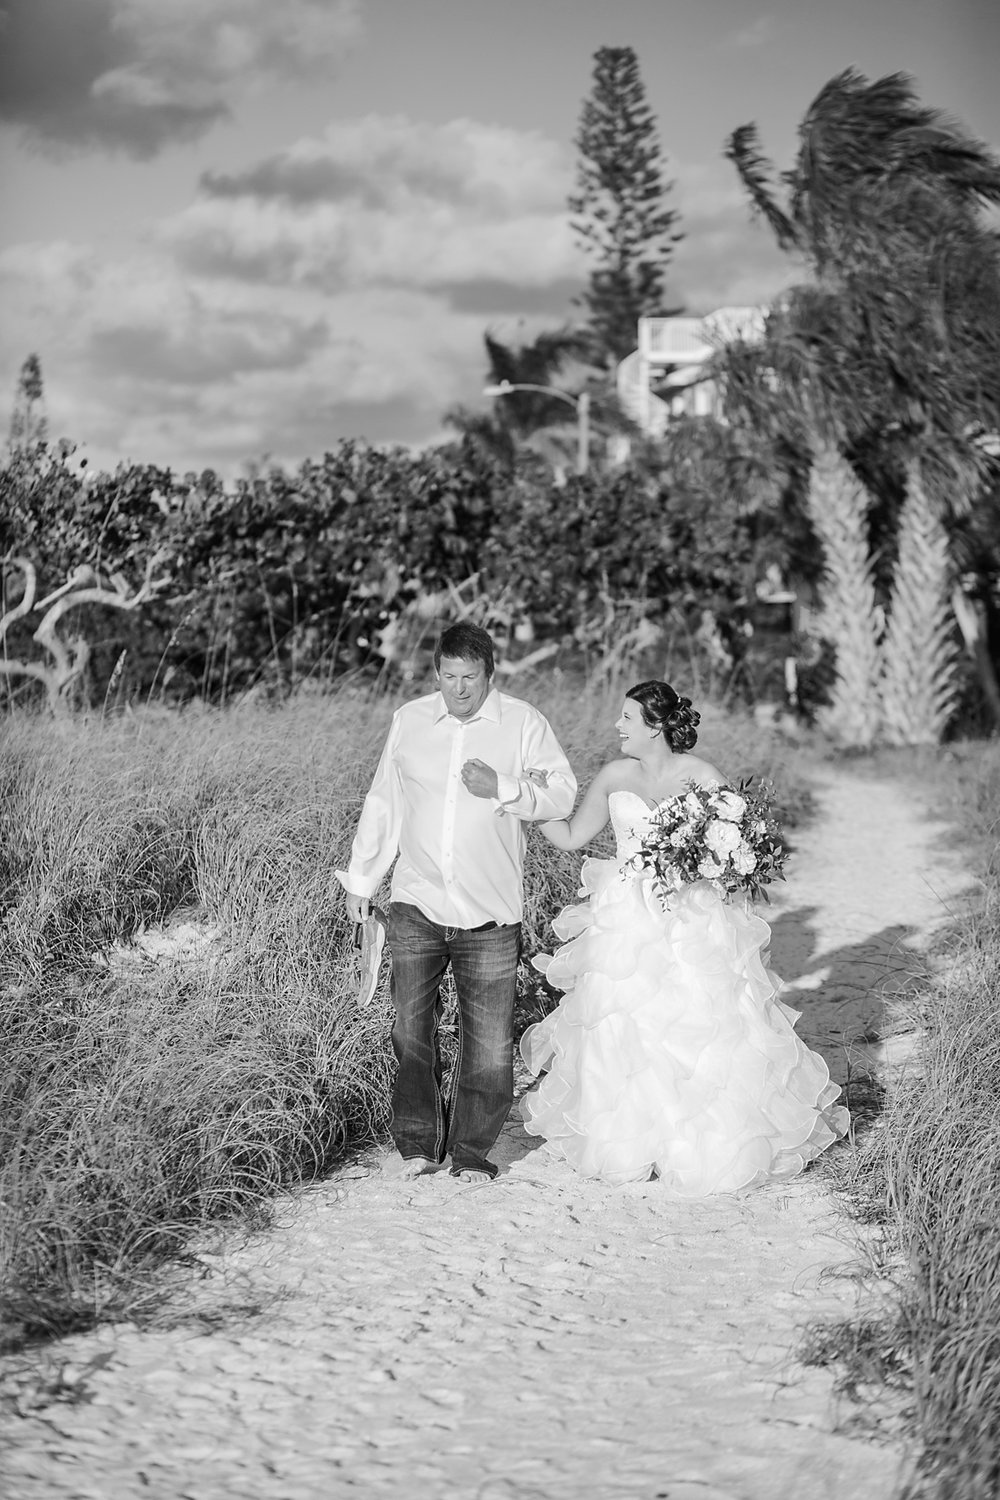 Bailey + Chalin - Anna Maria Island Wedding Photographer - Destination Wedding Photography - Emily & Co. Photography - Beach Wedding Photography (23).jpg